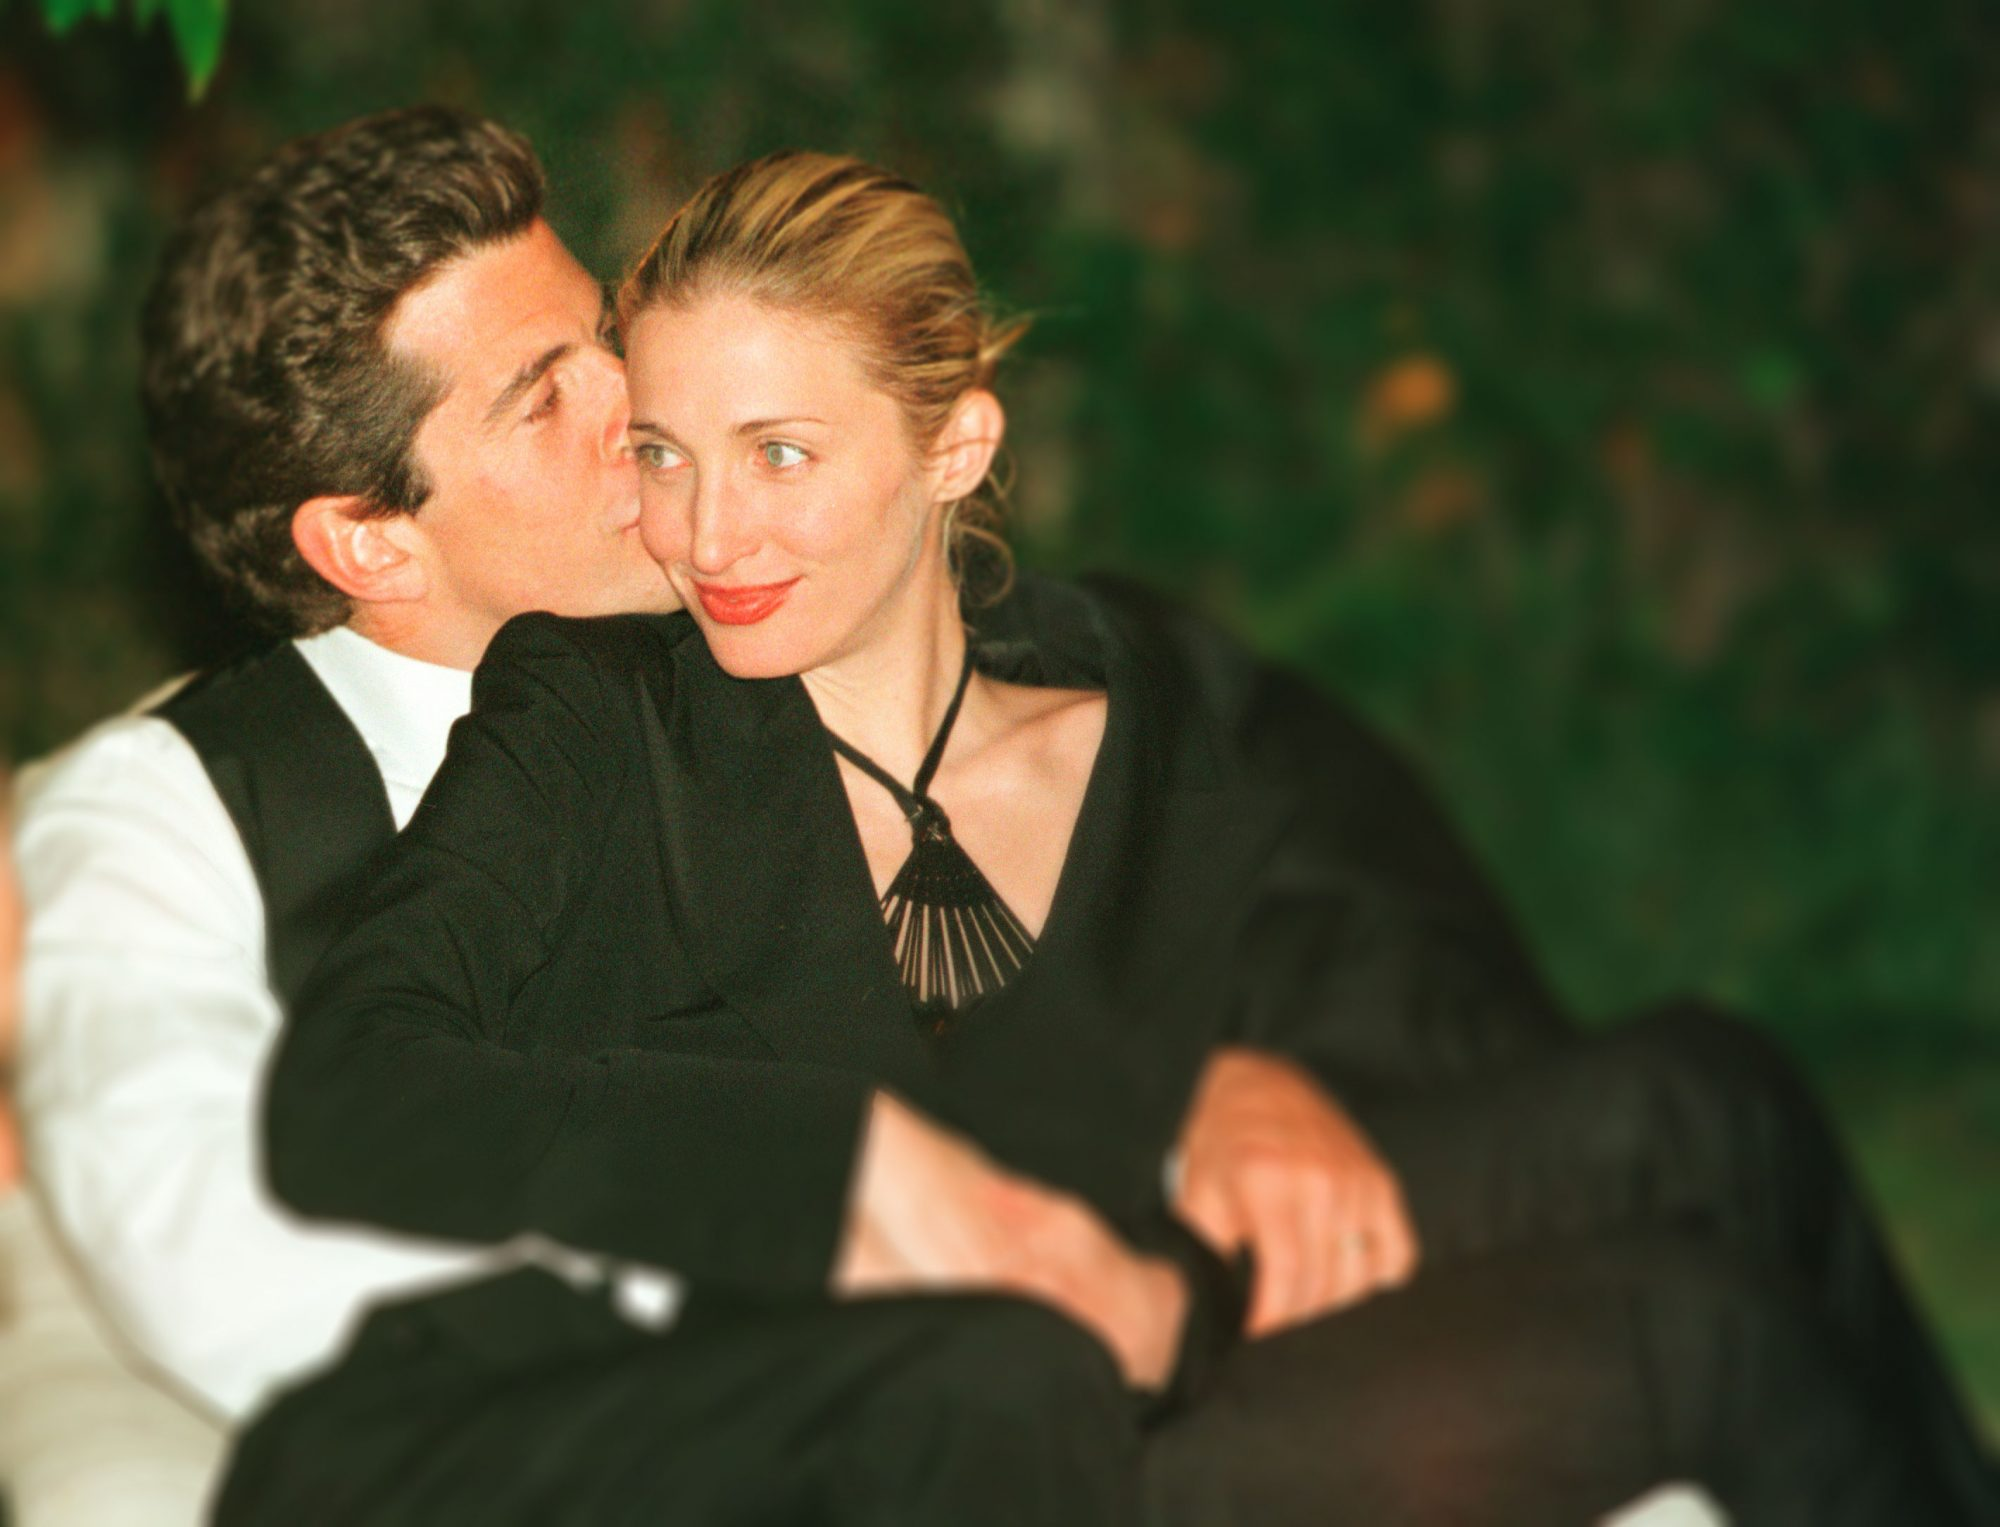 The Clever Reason John F. Kennedy Jr. Wanted the Press to Think He Was Constantly Dating